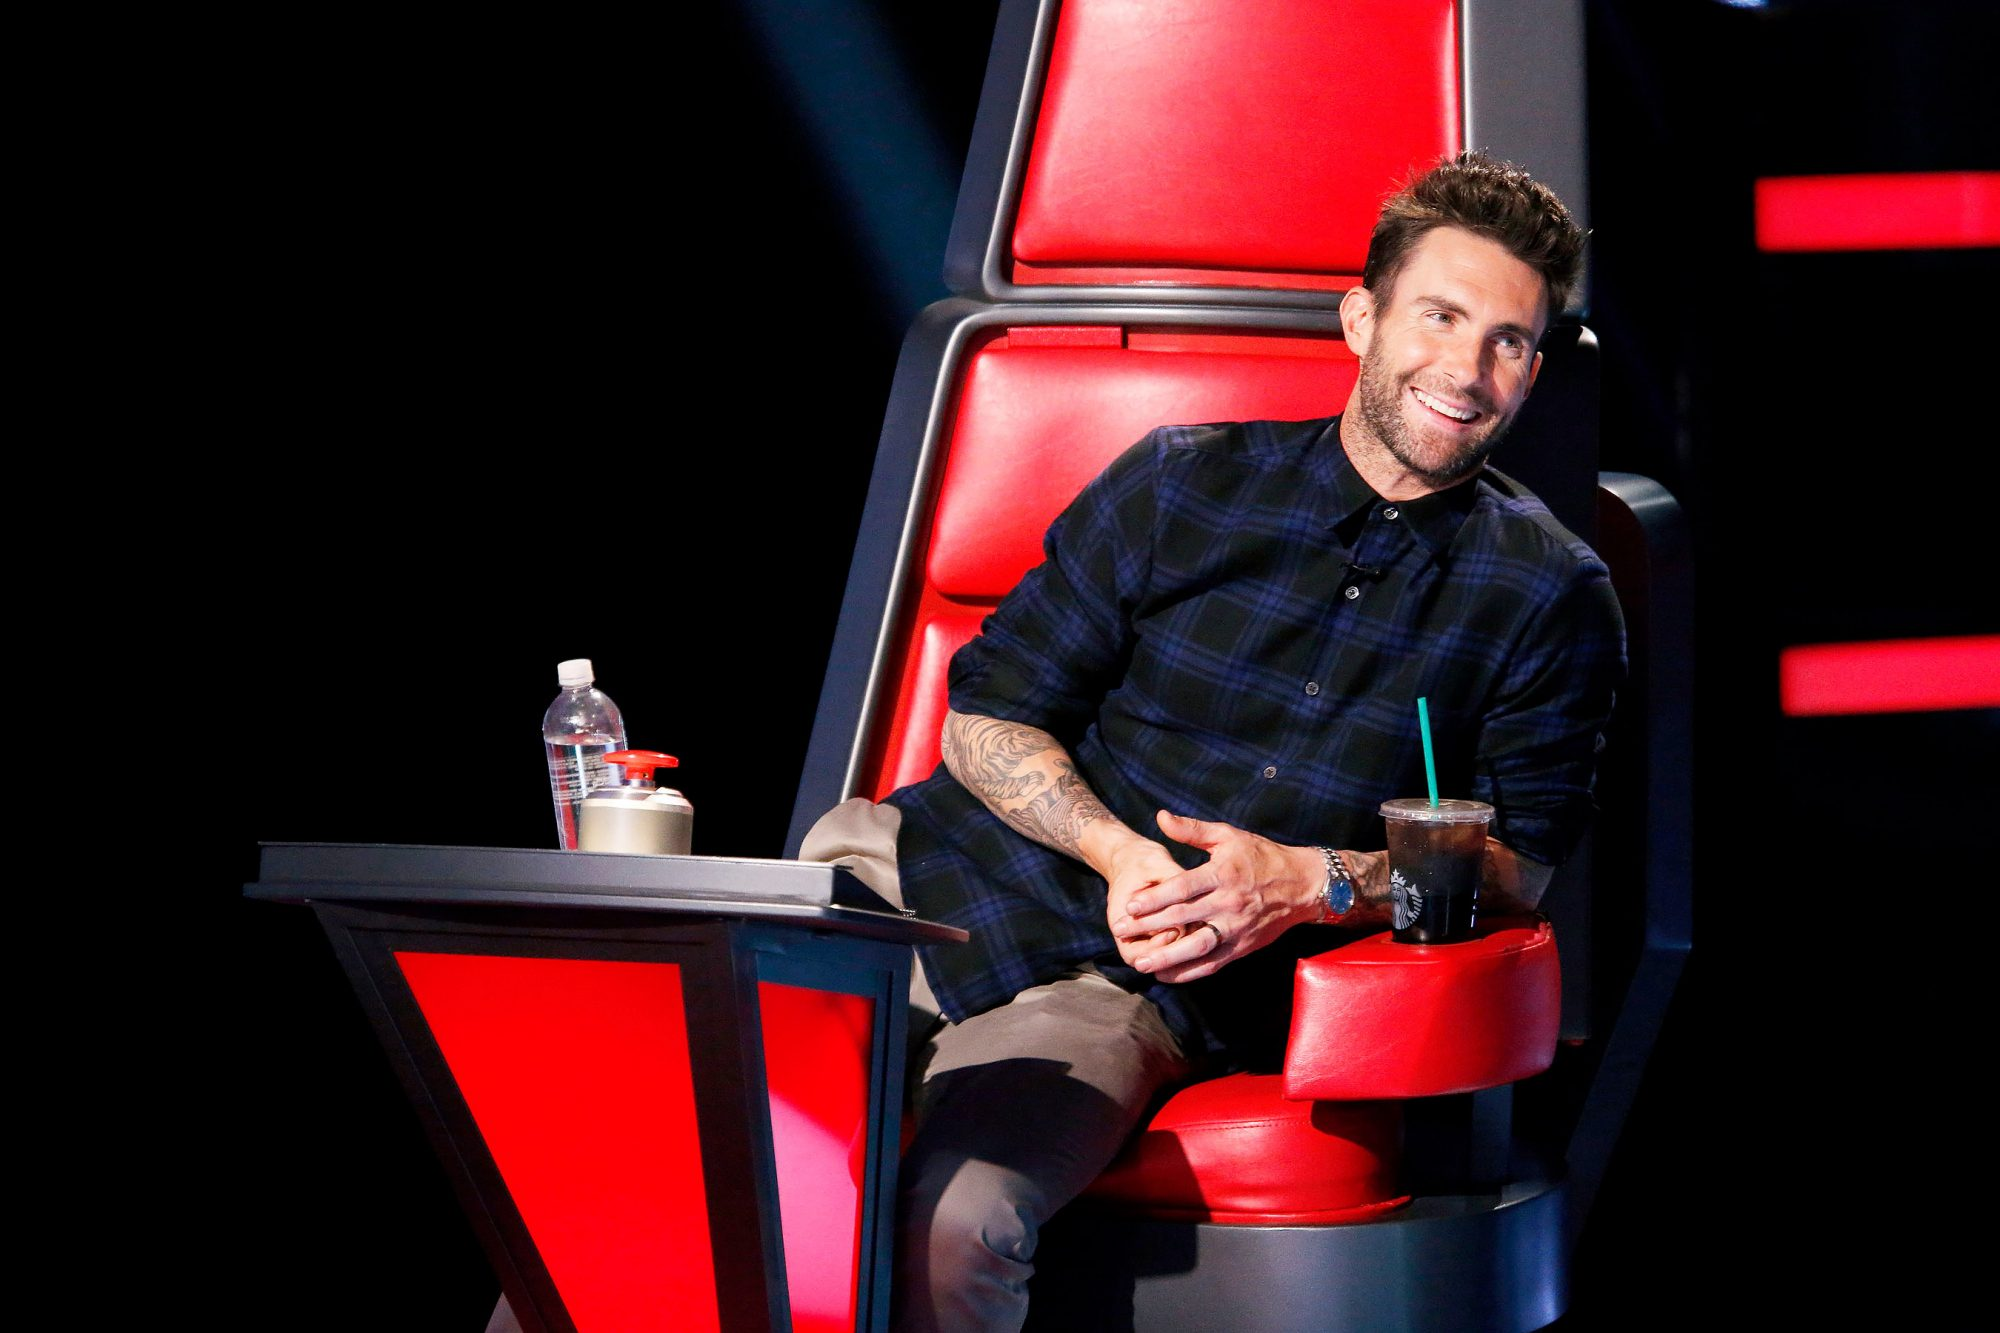 """THE VOICE -- """"Blind Auditions"""" Episode 804 -- Pictured: Adam Levine -- (Photo by: Trae Patton/NBC/NBCU Photo Bank via Getty Images)"""